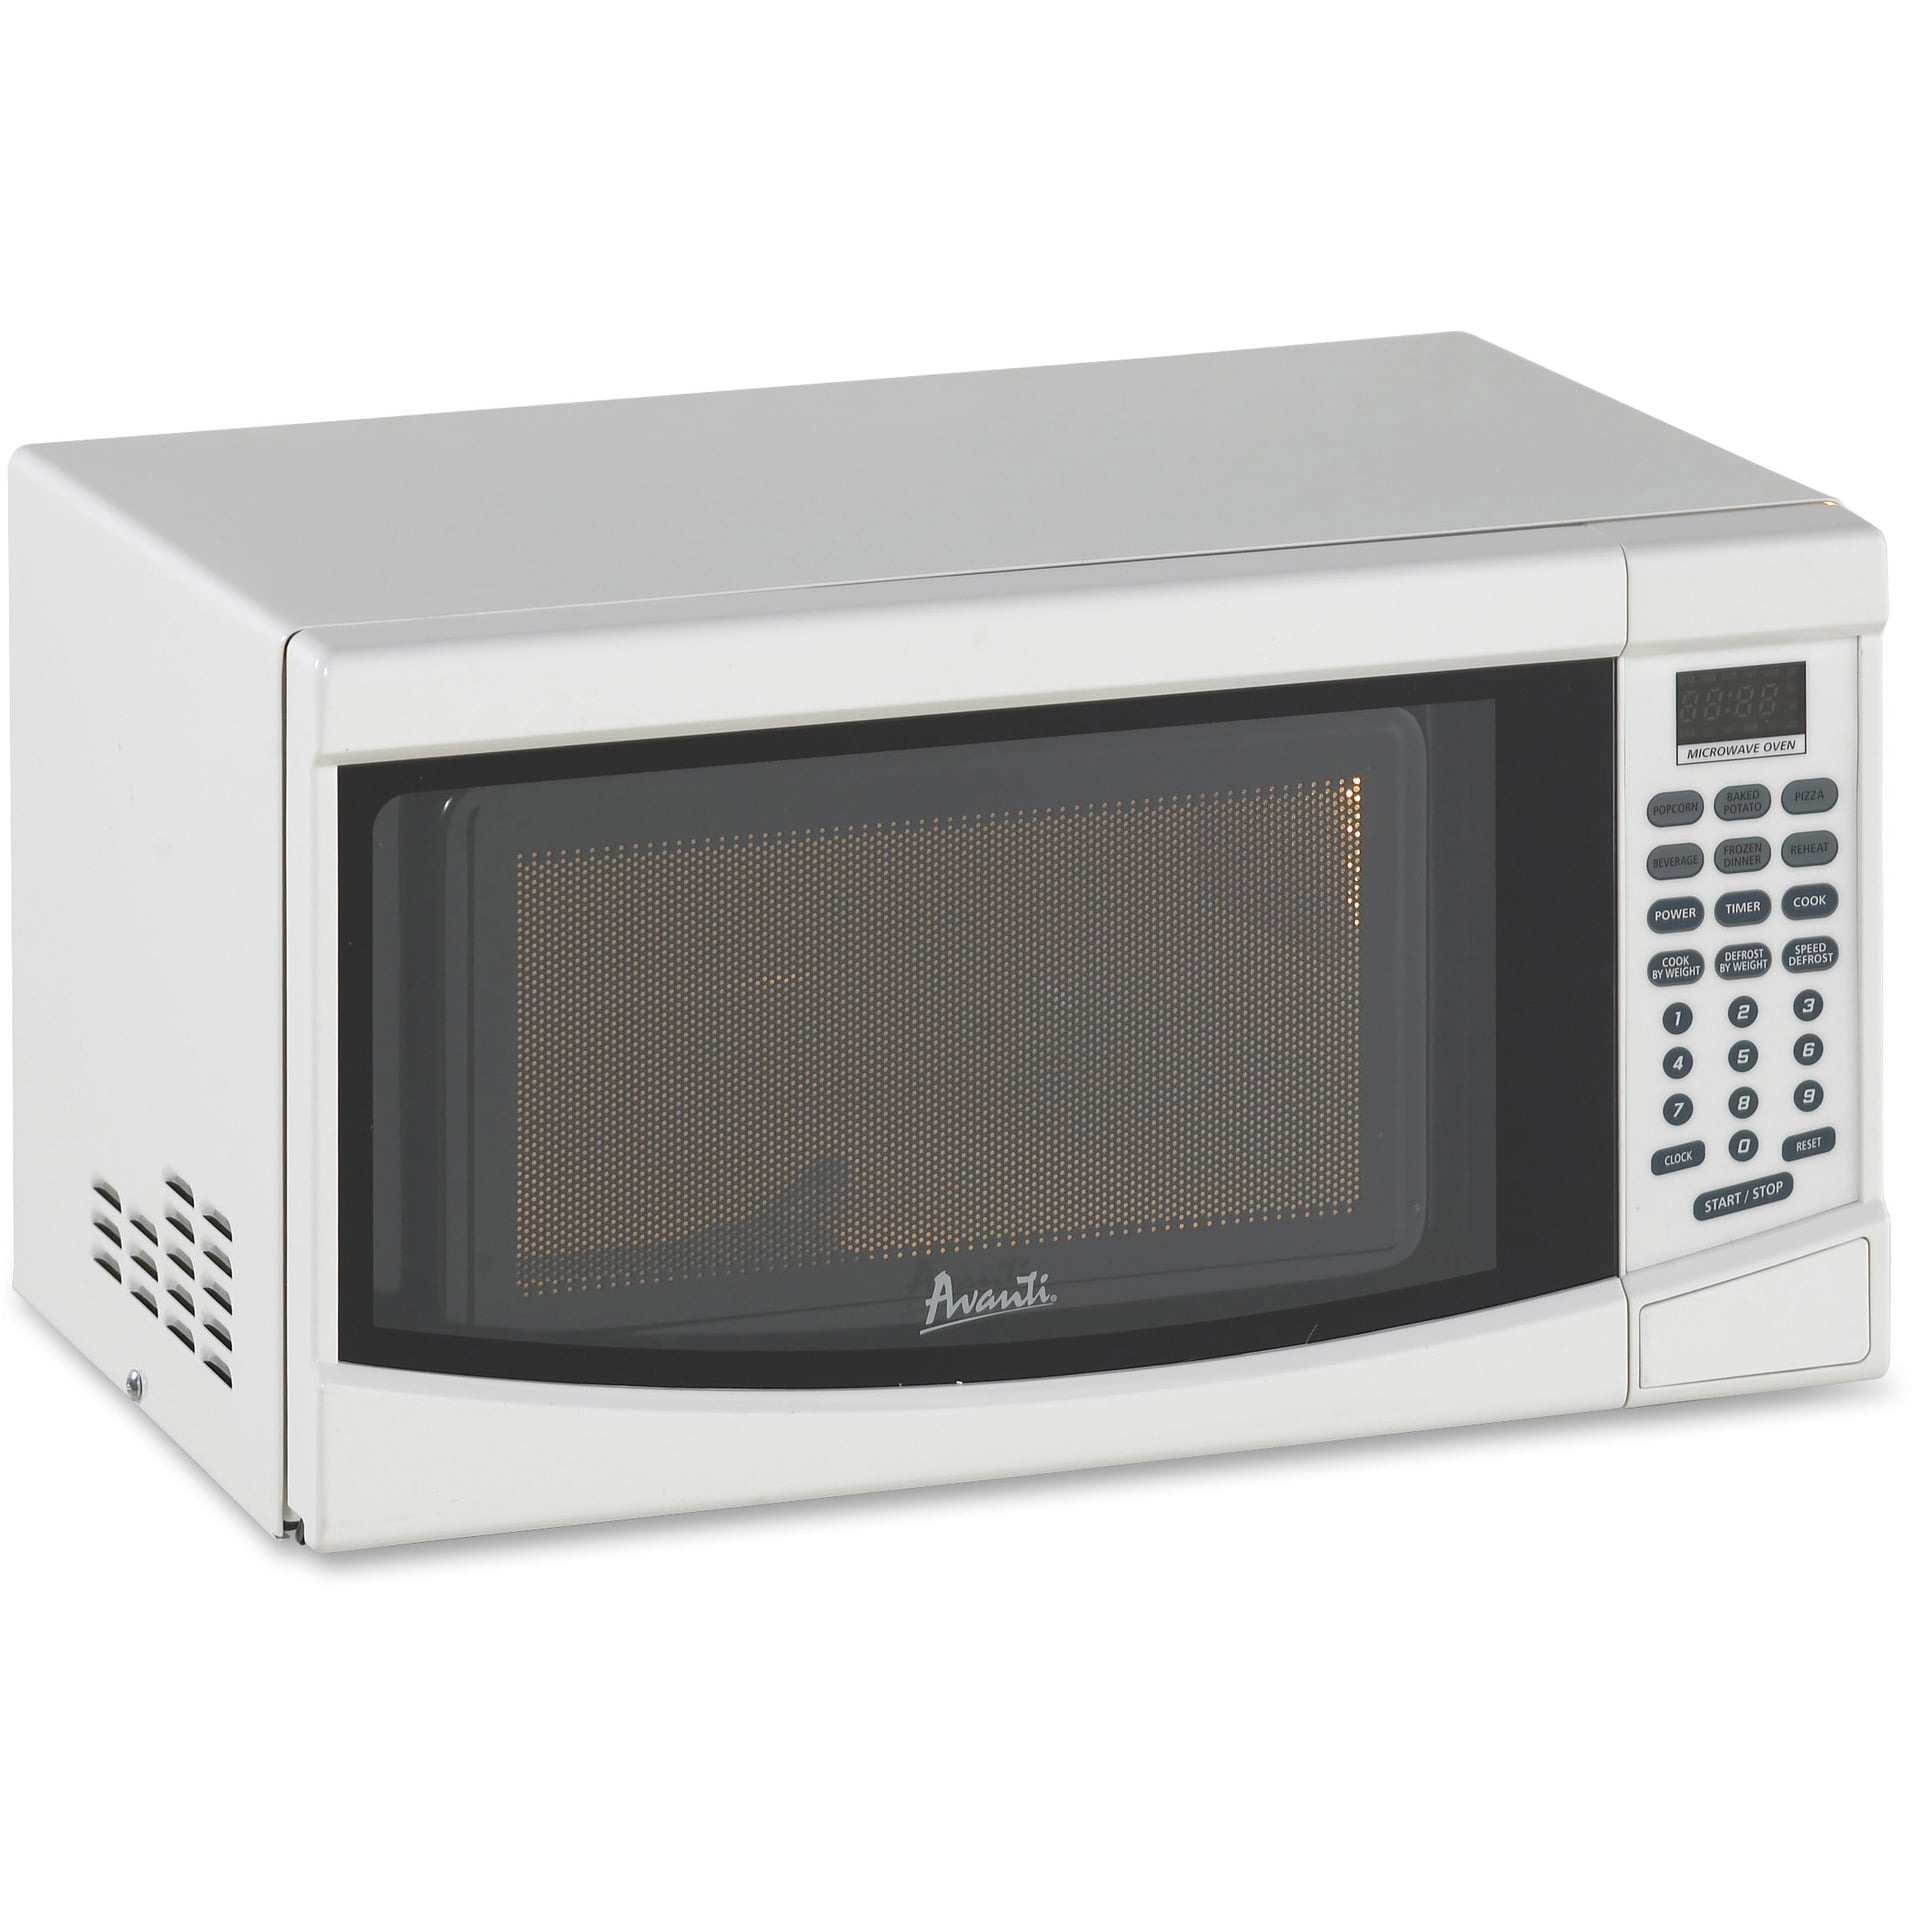 Avanti 18 0.7 cu.ft. Countertop Microwave MO7191TW Color: Black